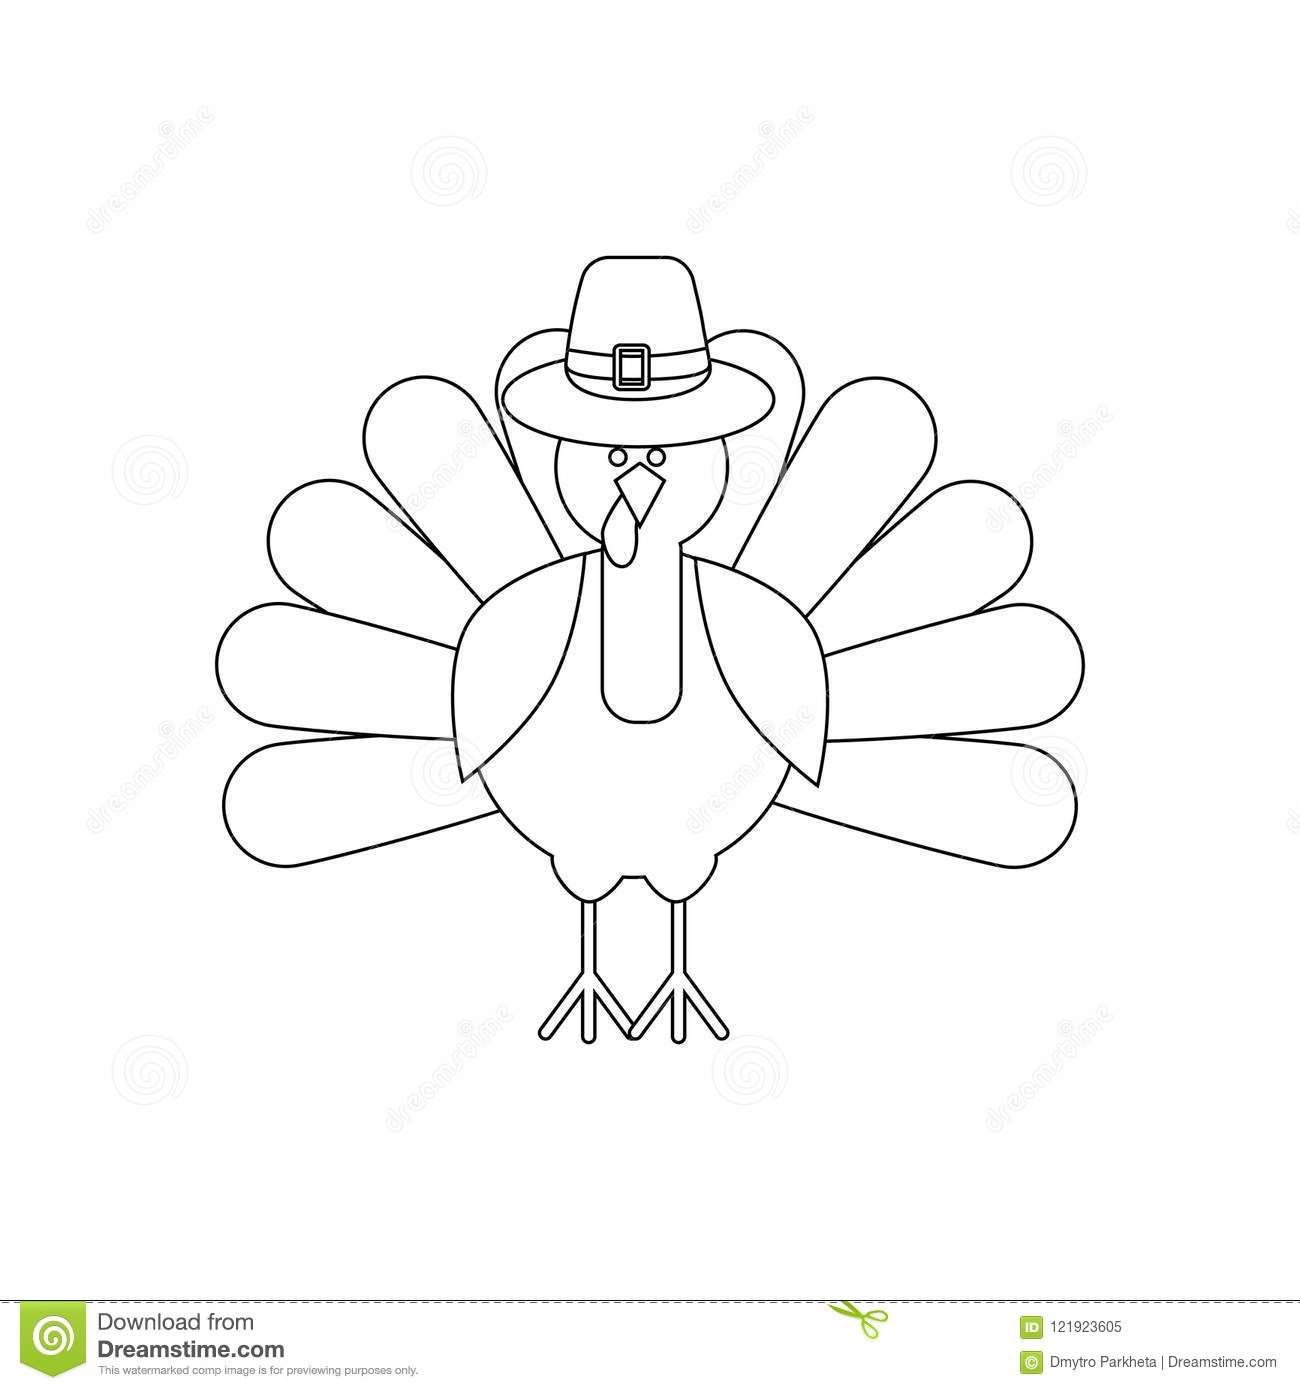 Turkey Thanksgiving Day Coloring Page Stock Vector - Illustration of ...